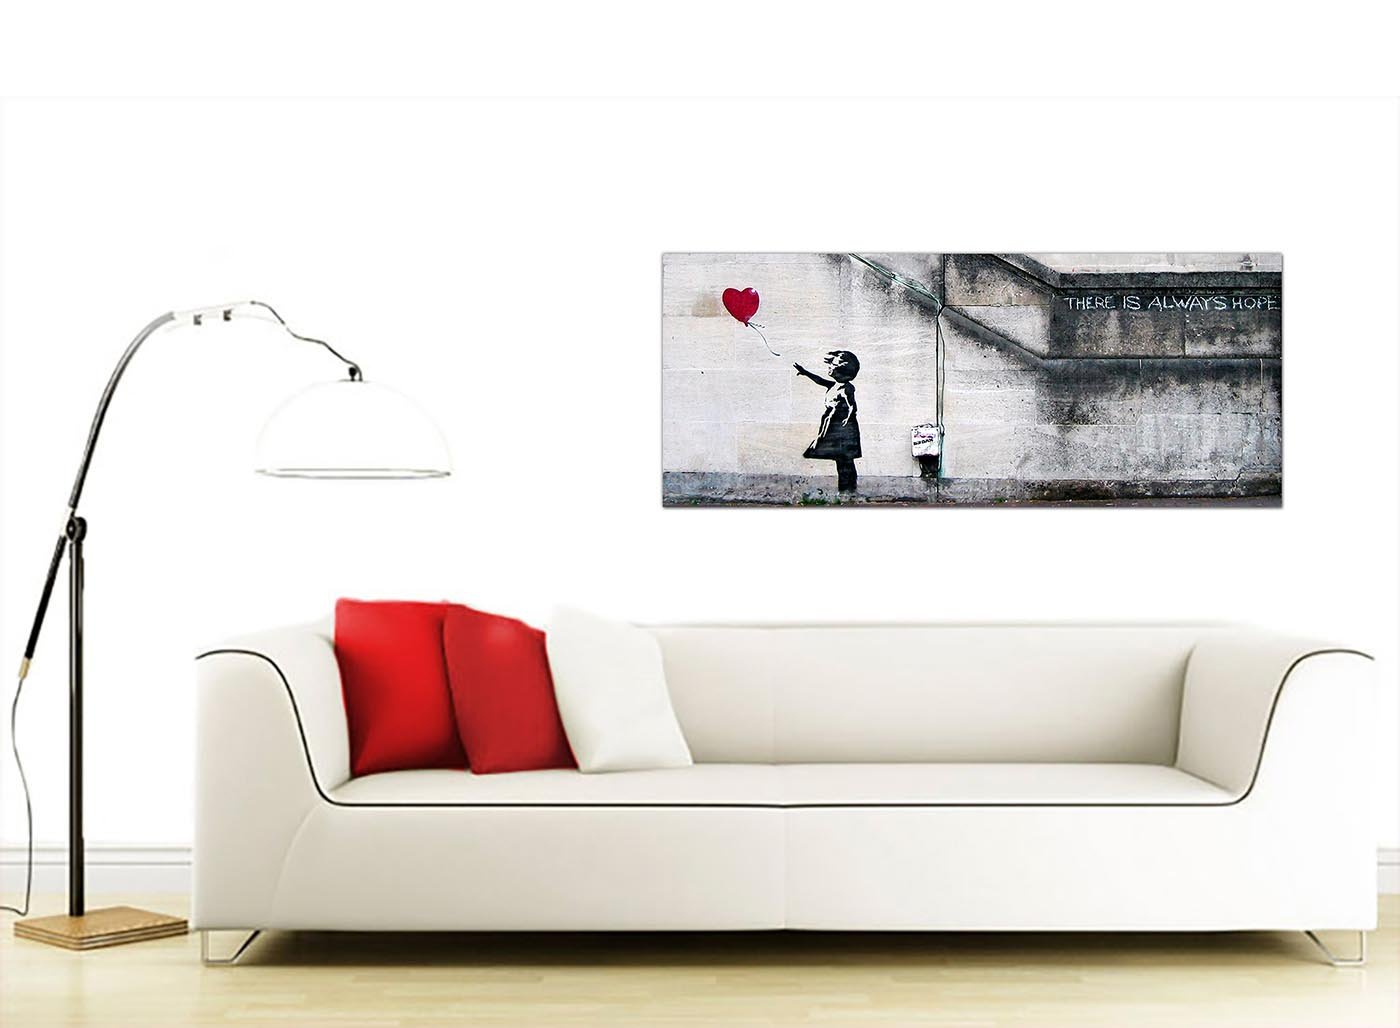 Large Canvas Prints Of Banksys Girl With The Red Balloon For Your Dining Room